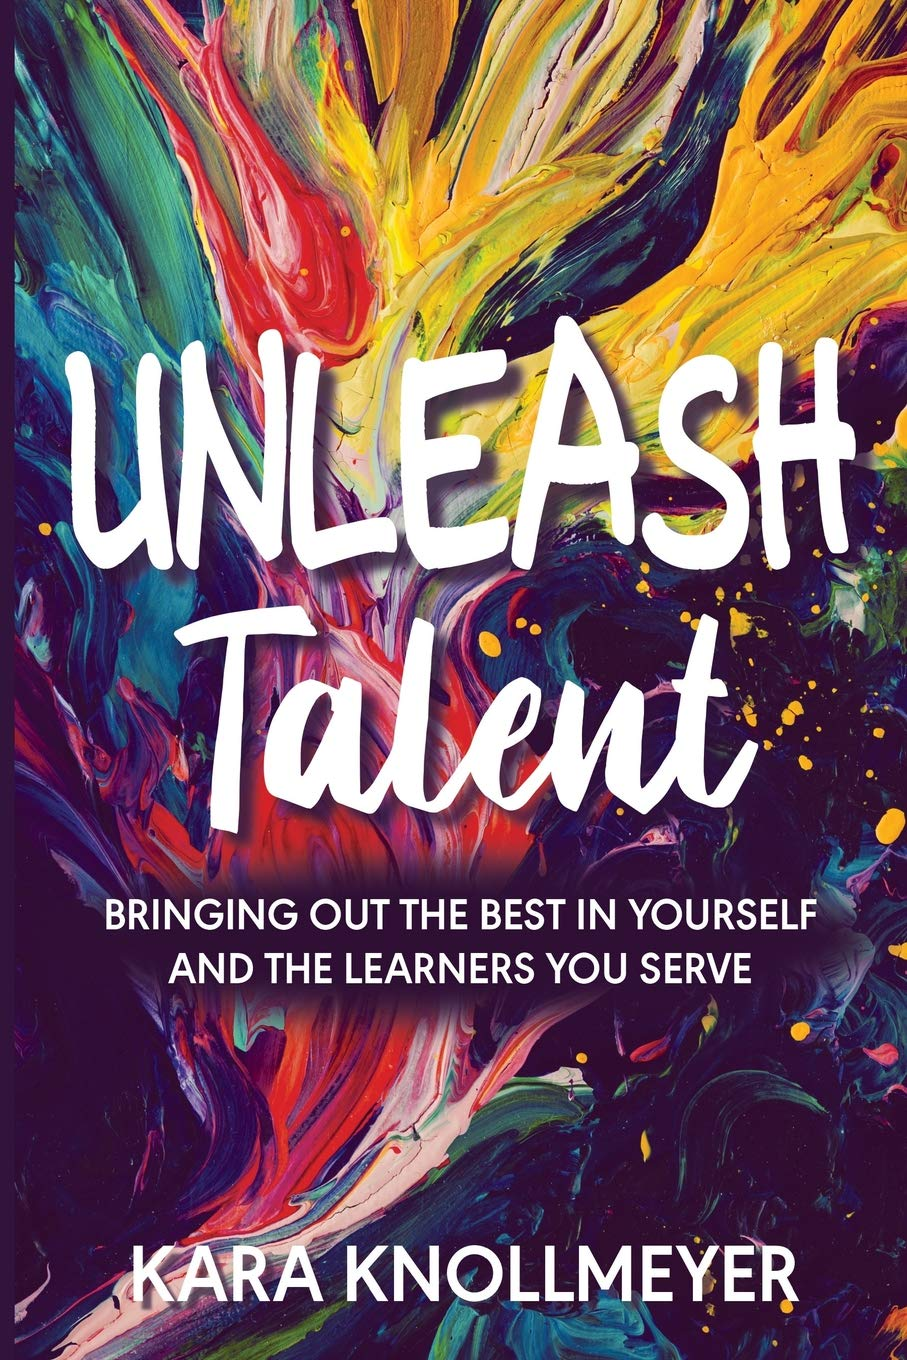 Read Online Unleash Talent: Bringing Out the Best in Yourself and the Learners You Serve pdf epub